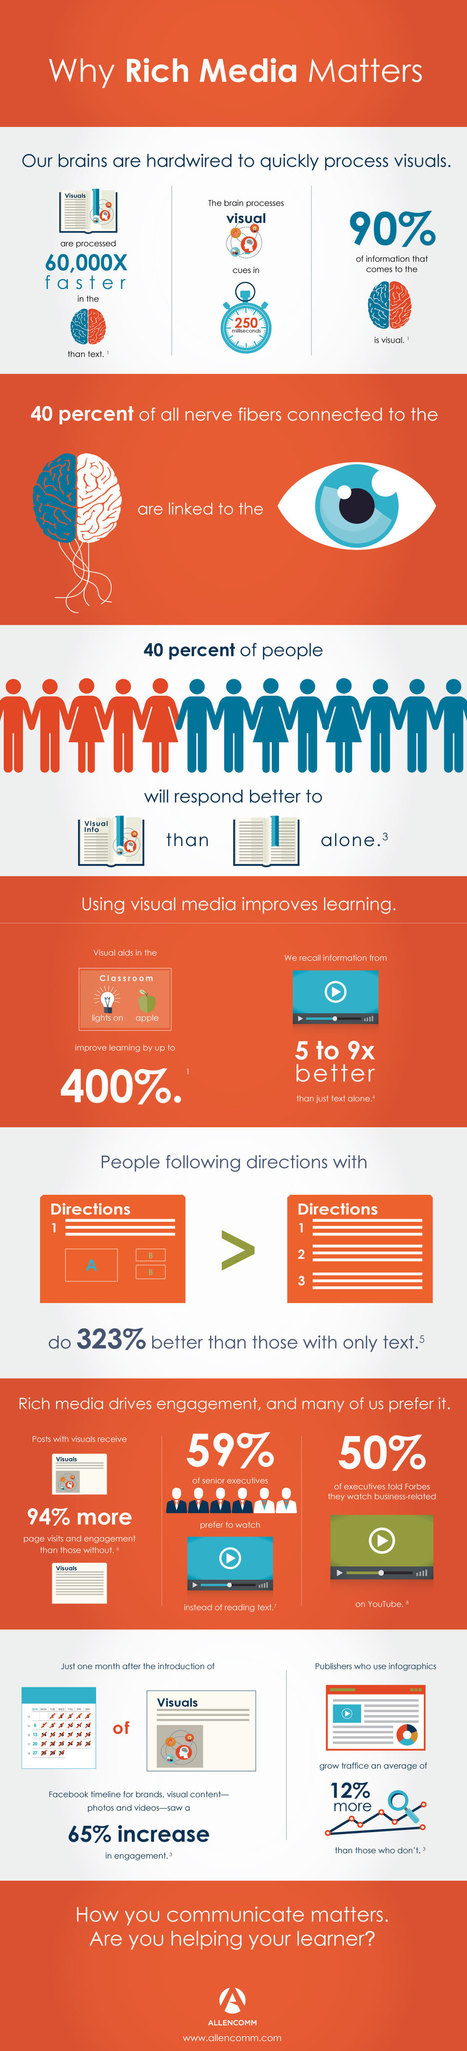 Boosting Learner Engagement with Rich Media Infographic | Infographic | 21st Century Literacy and Learning | Scoop.it